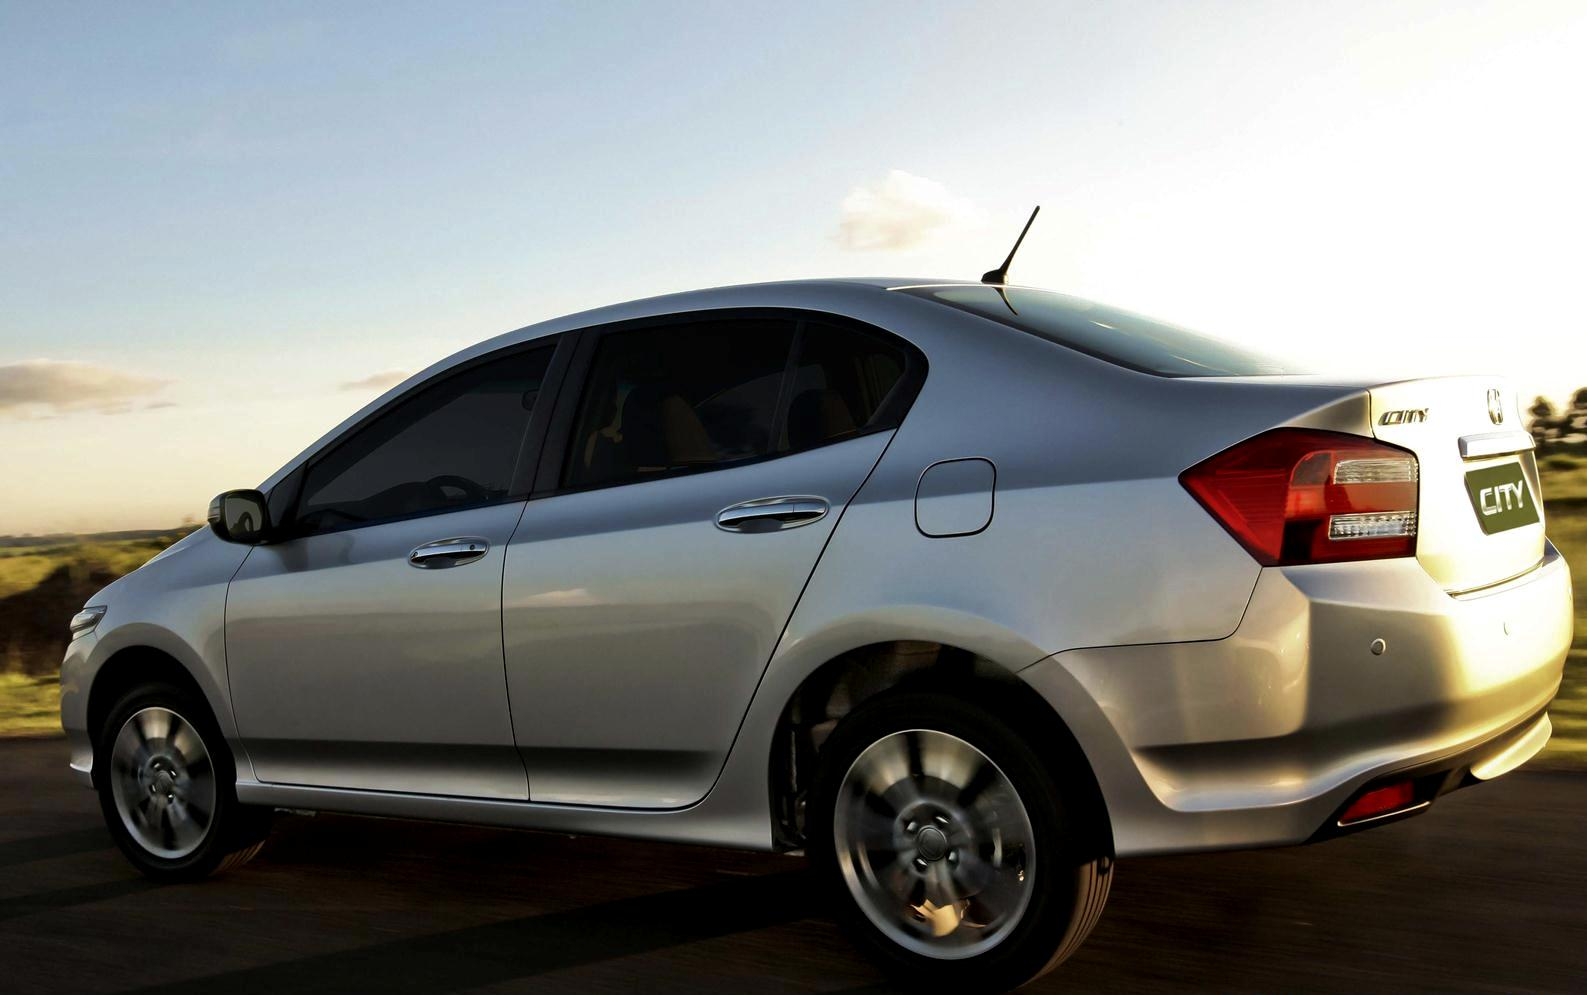 Honda Civic Air Intake additionally Engine Starter Wiring Diagram in addition Honda Accord Power Steering Pump Diagram On Acura Tsx Engine Problems as well 8 Cylinder Engine Diagram additionally LKQ Powertrain. on 1 8 vtec engine diagram